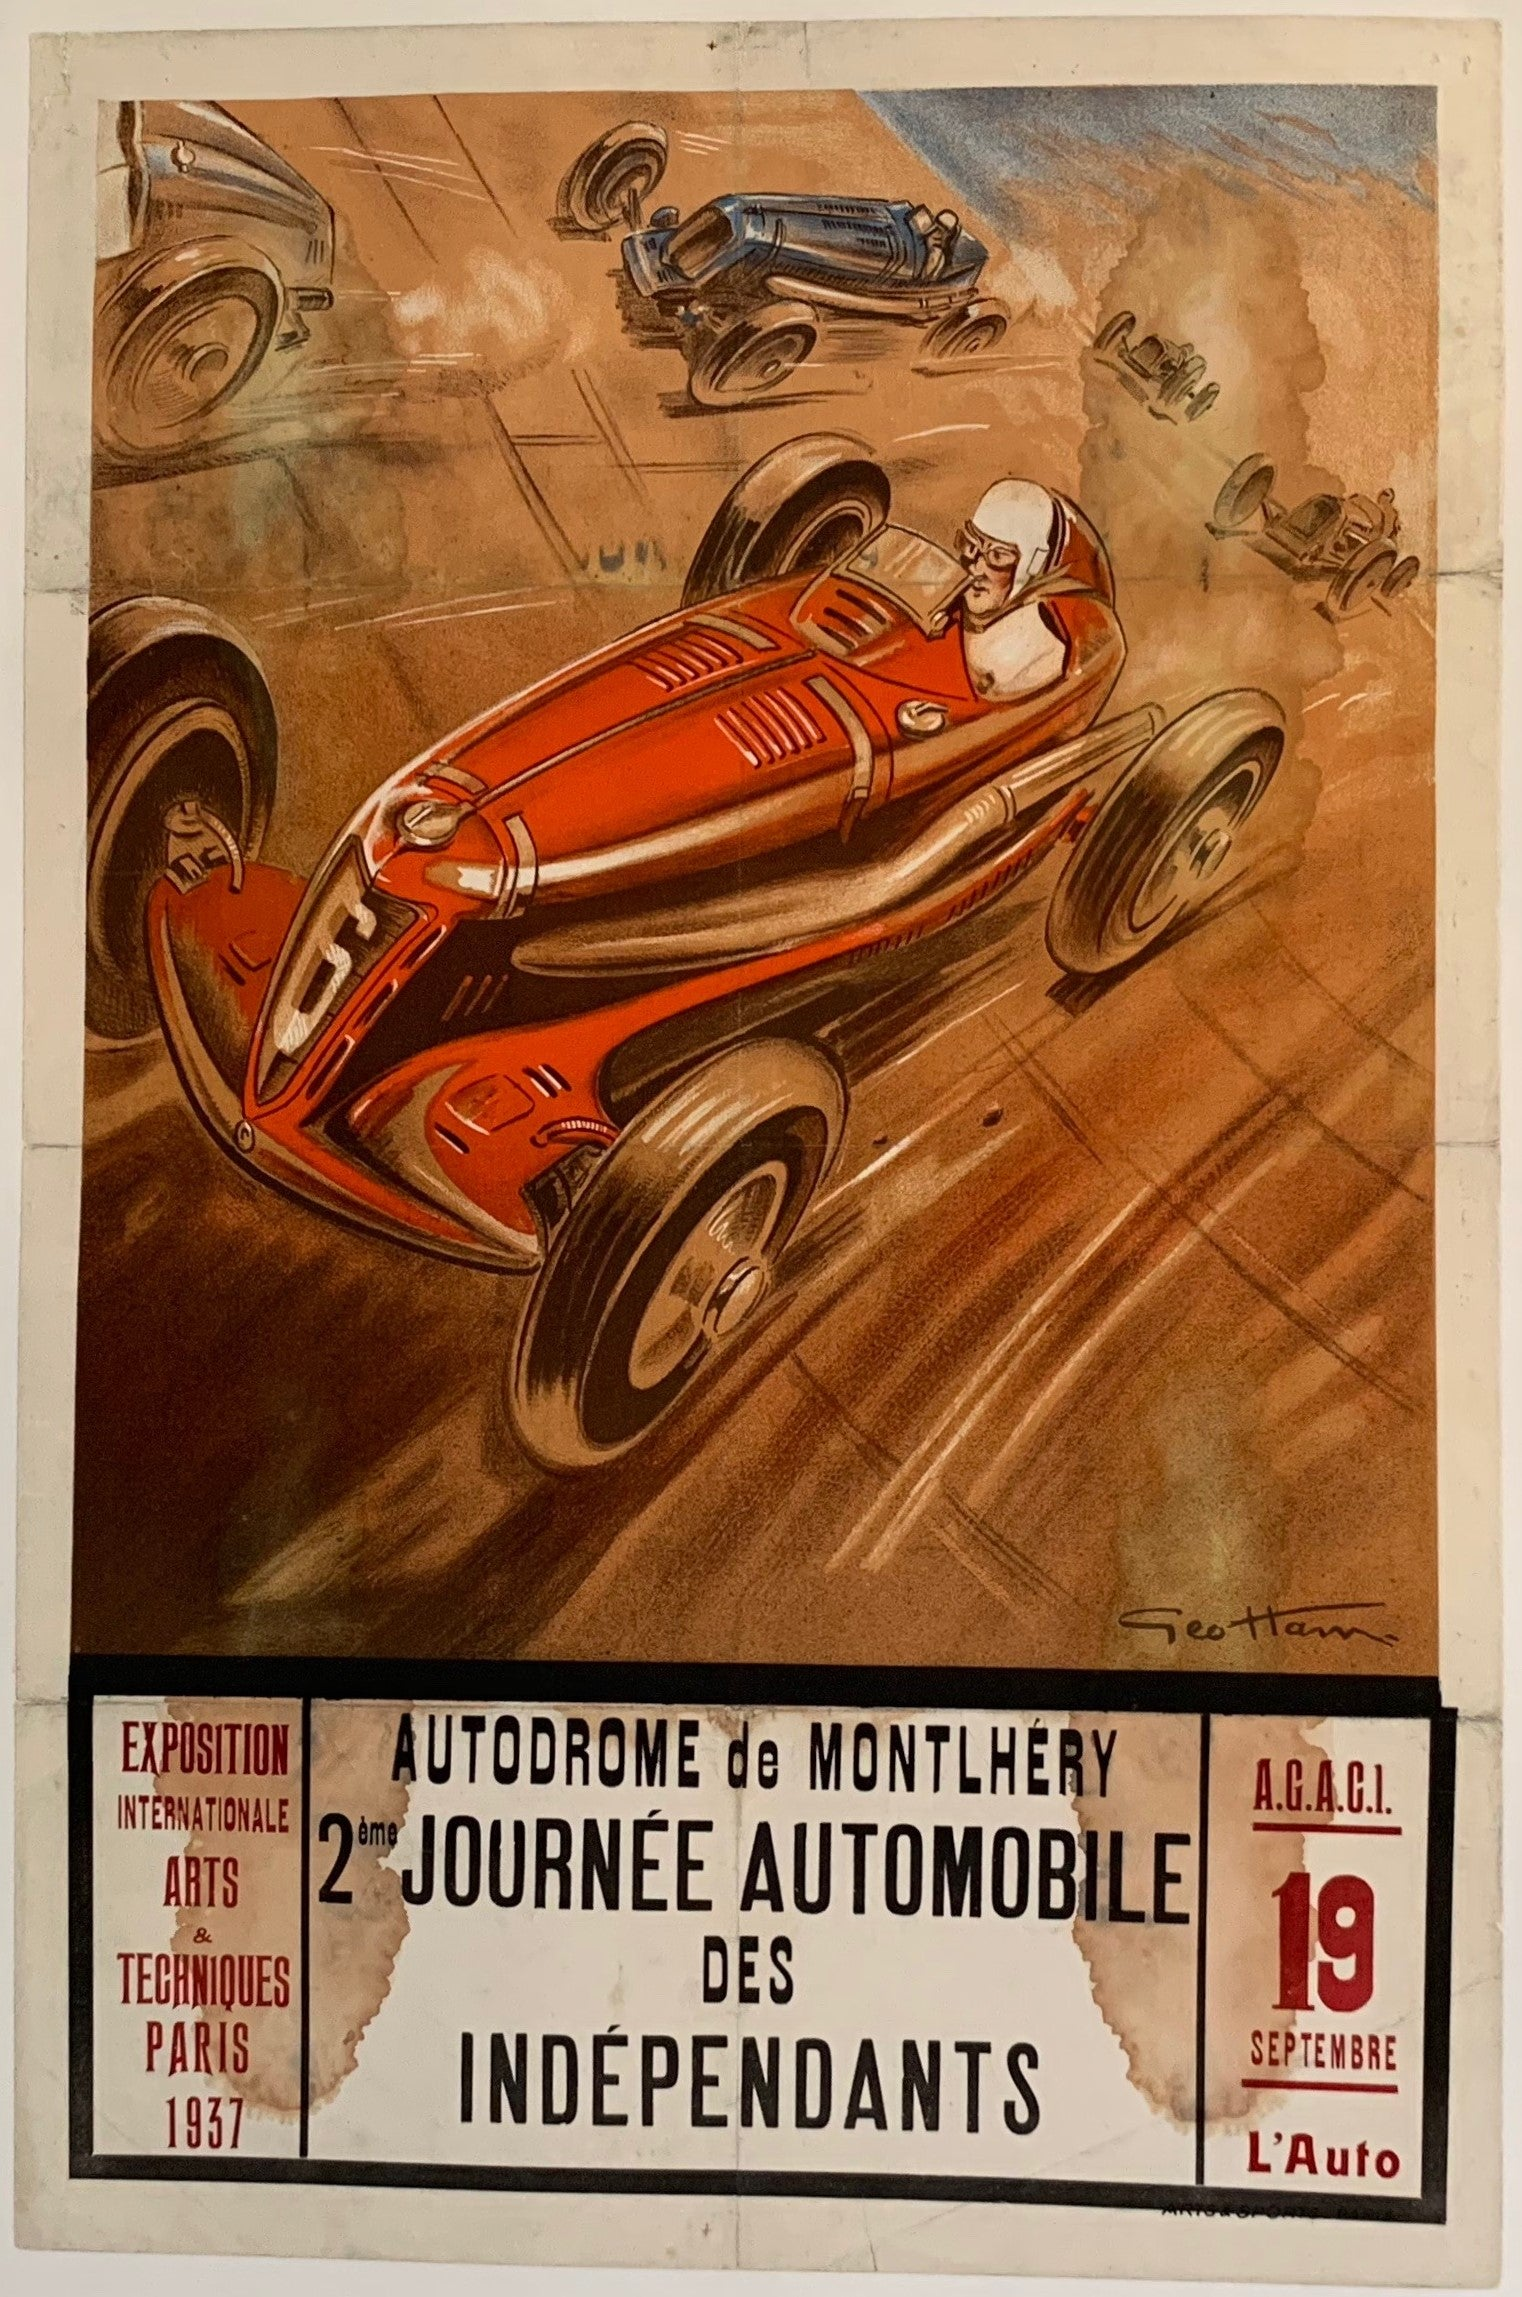 Autodrome de Montlhery 2eme Journee Automobile des Independants